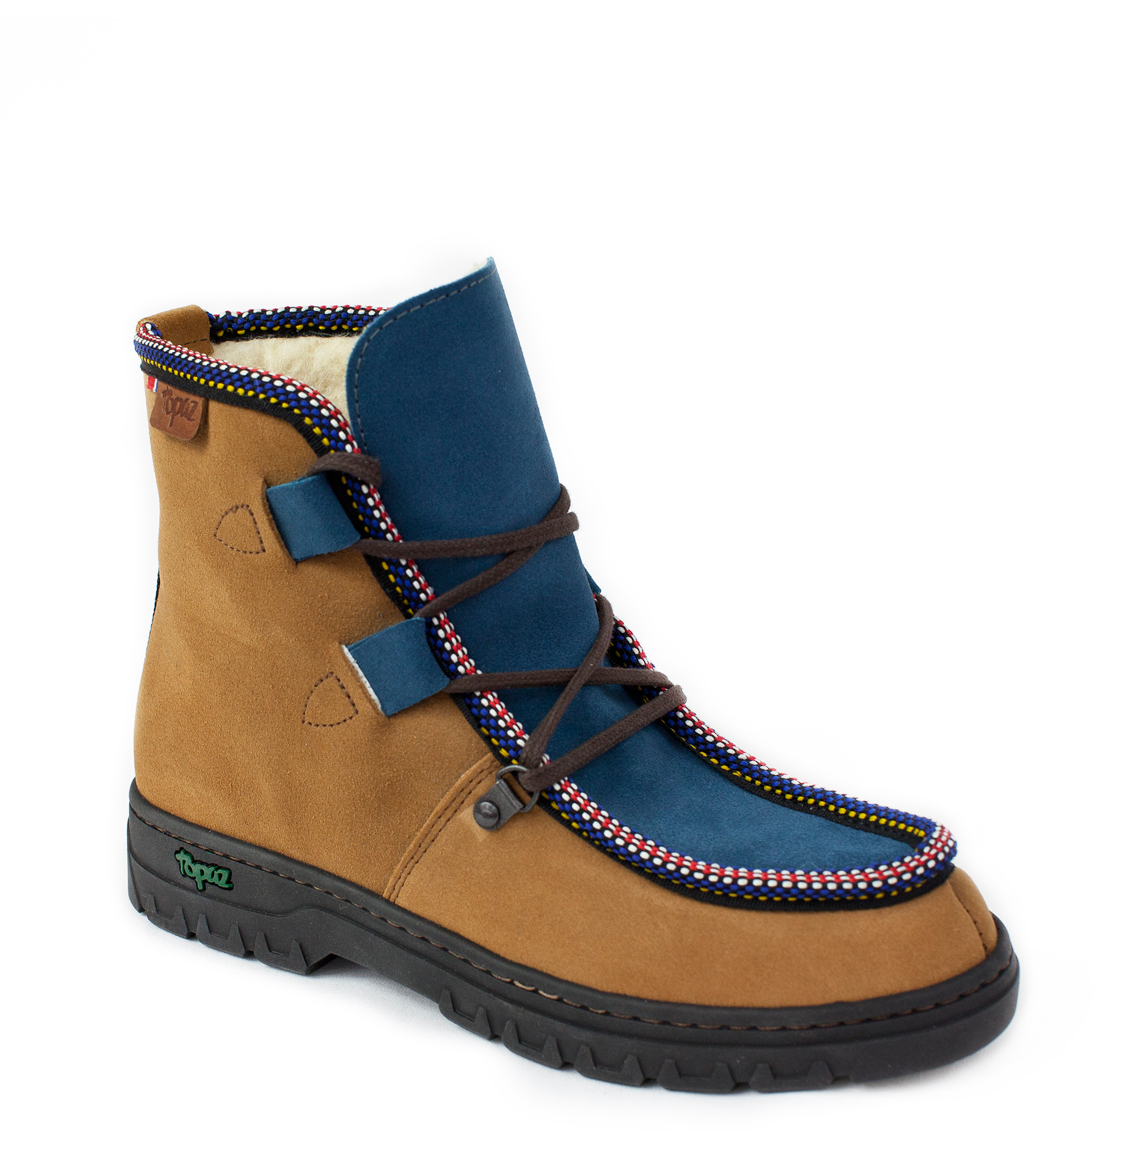 Art. 65 Minneapolis - Topaz of Norway - Winter boots and